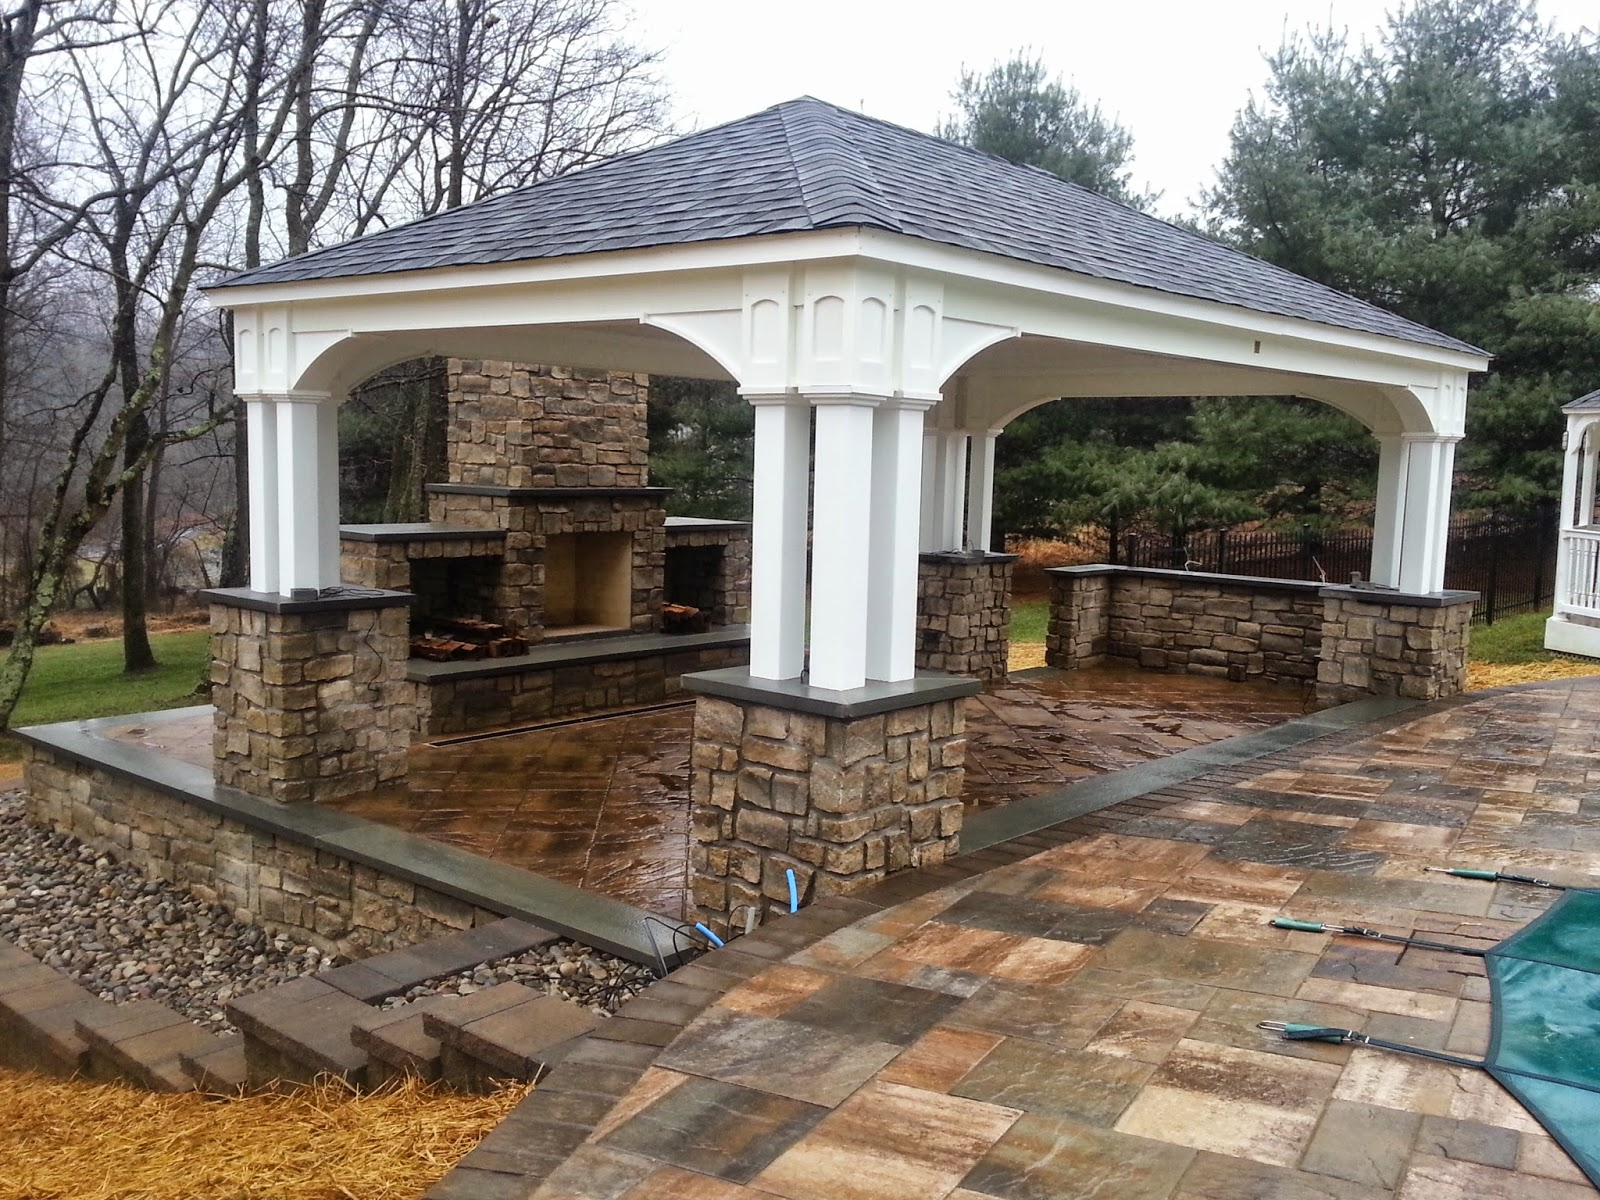 Outdoor Pavilion Fireplace By Life Time Pavers Jan 6 2017 Featured Projects Job Photos Pavilions Uncategorized